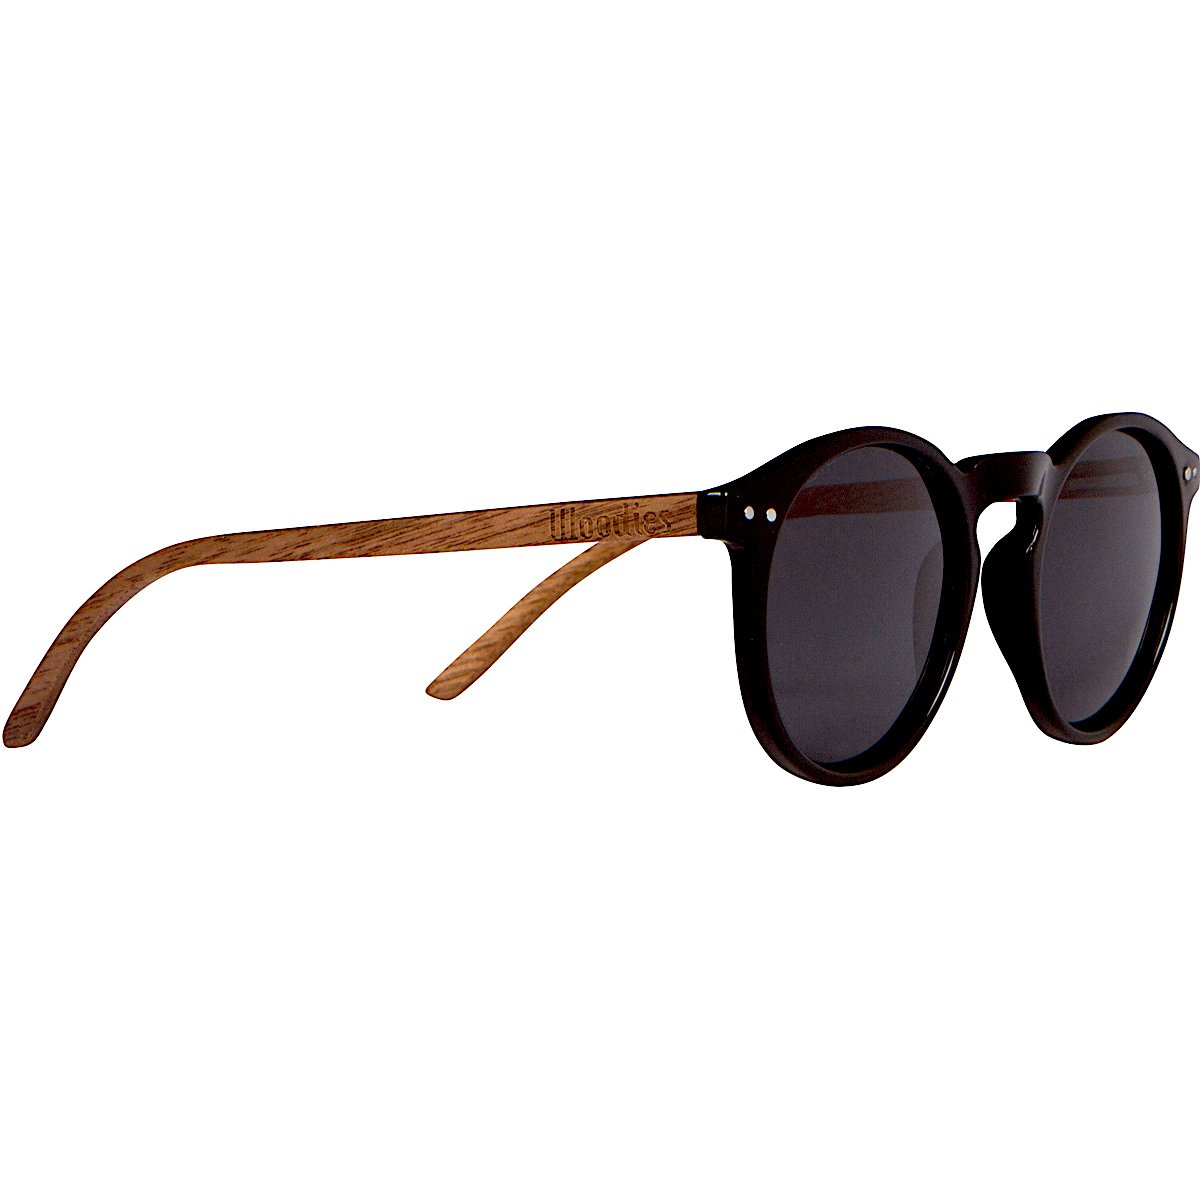 WOODIES Foster Style Walnut Wood Polarized Sunglasses with Round Lens